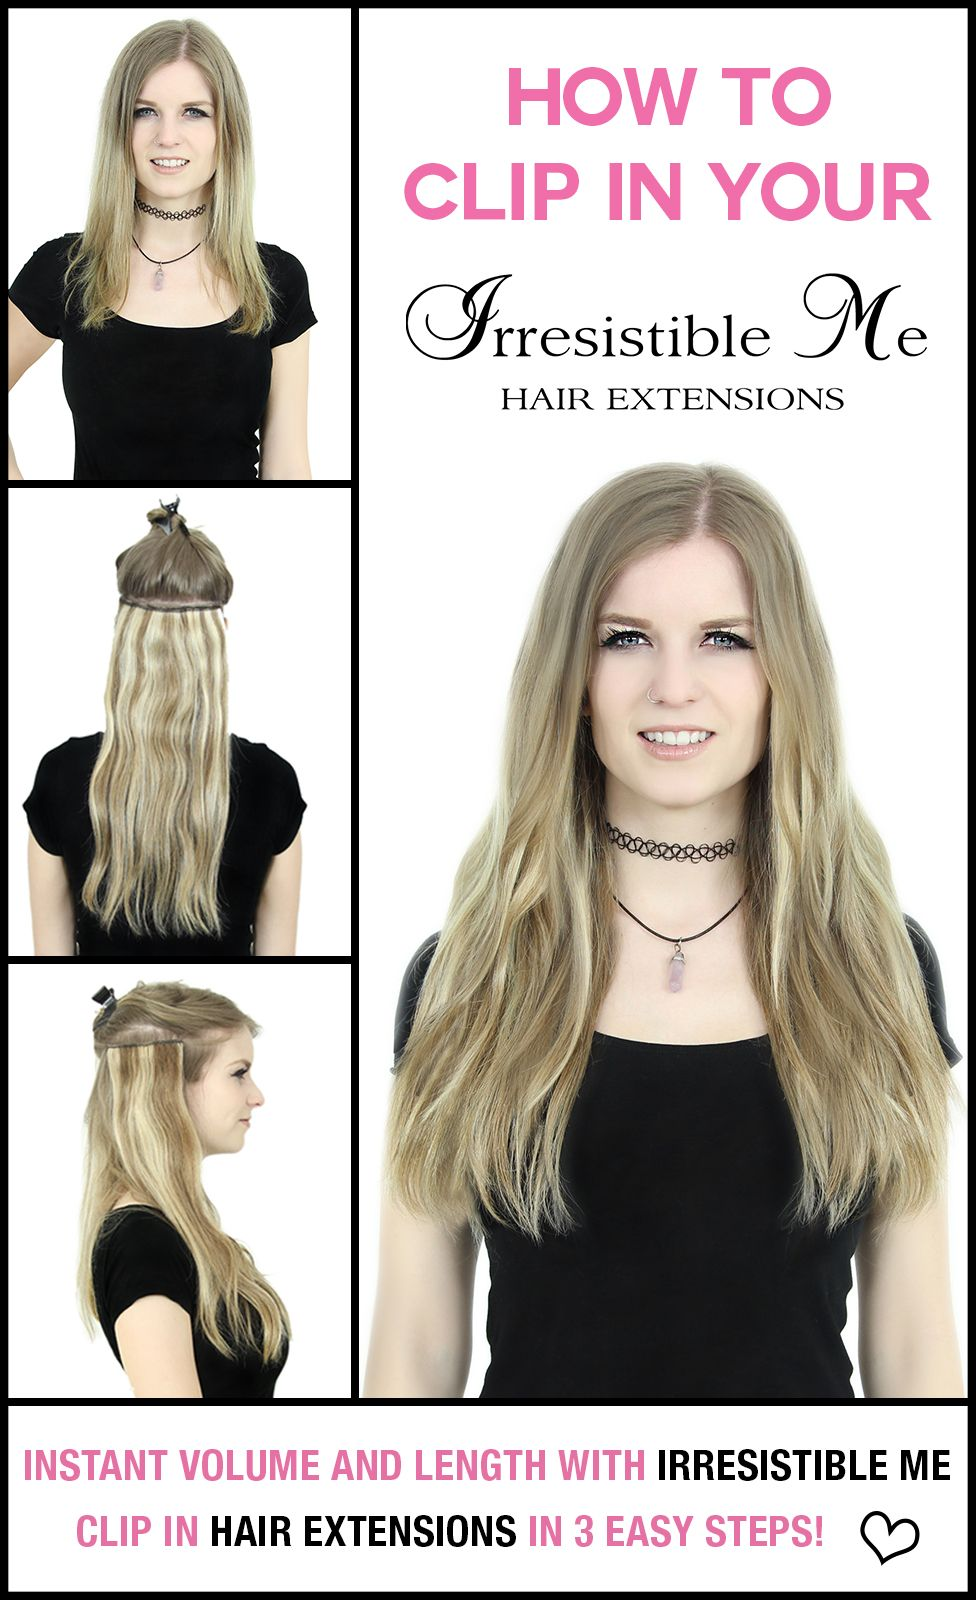 Add Instant Length And Volume To Your Hair With Irresistible Me Clip